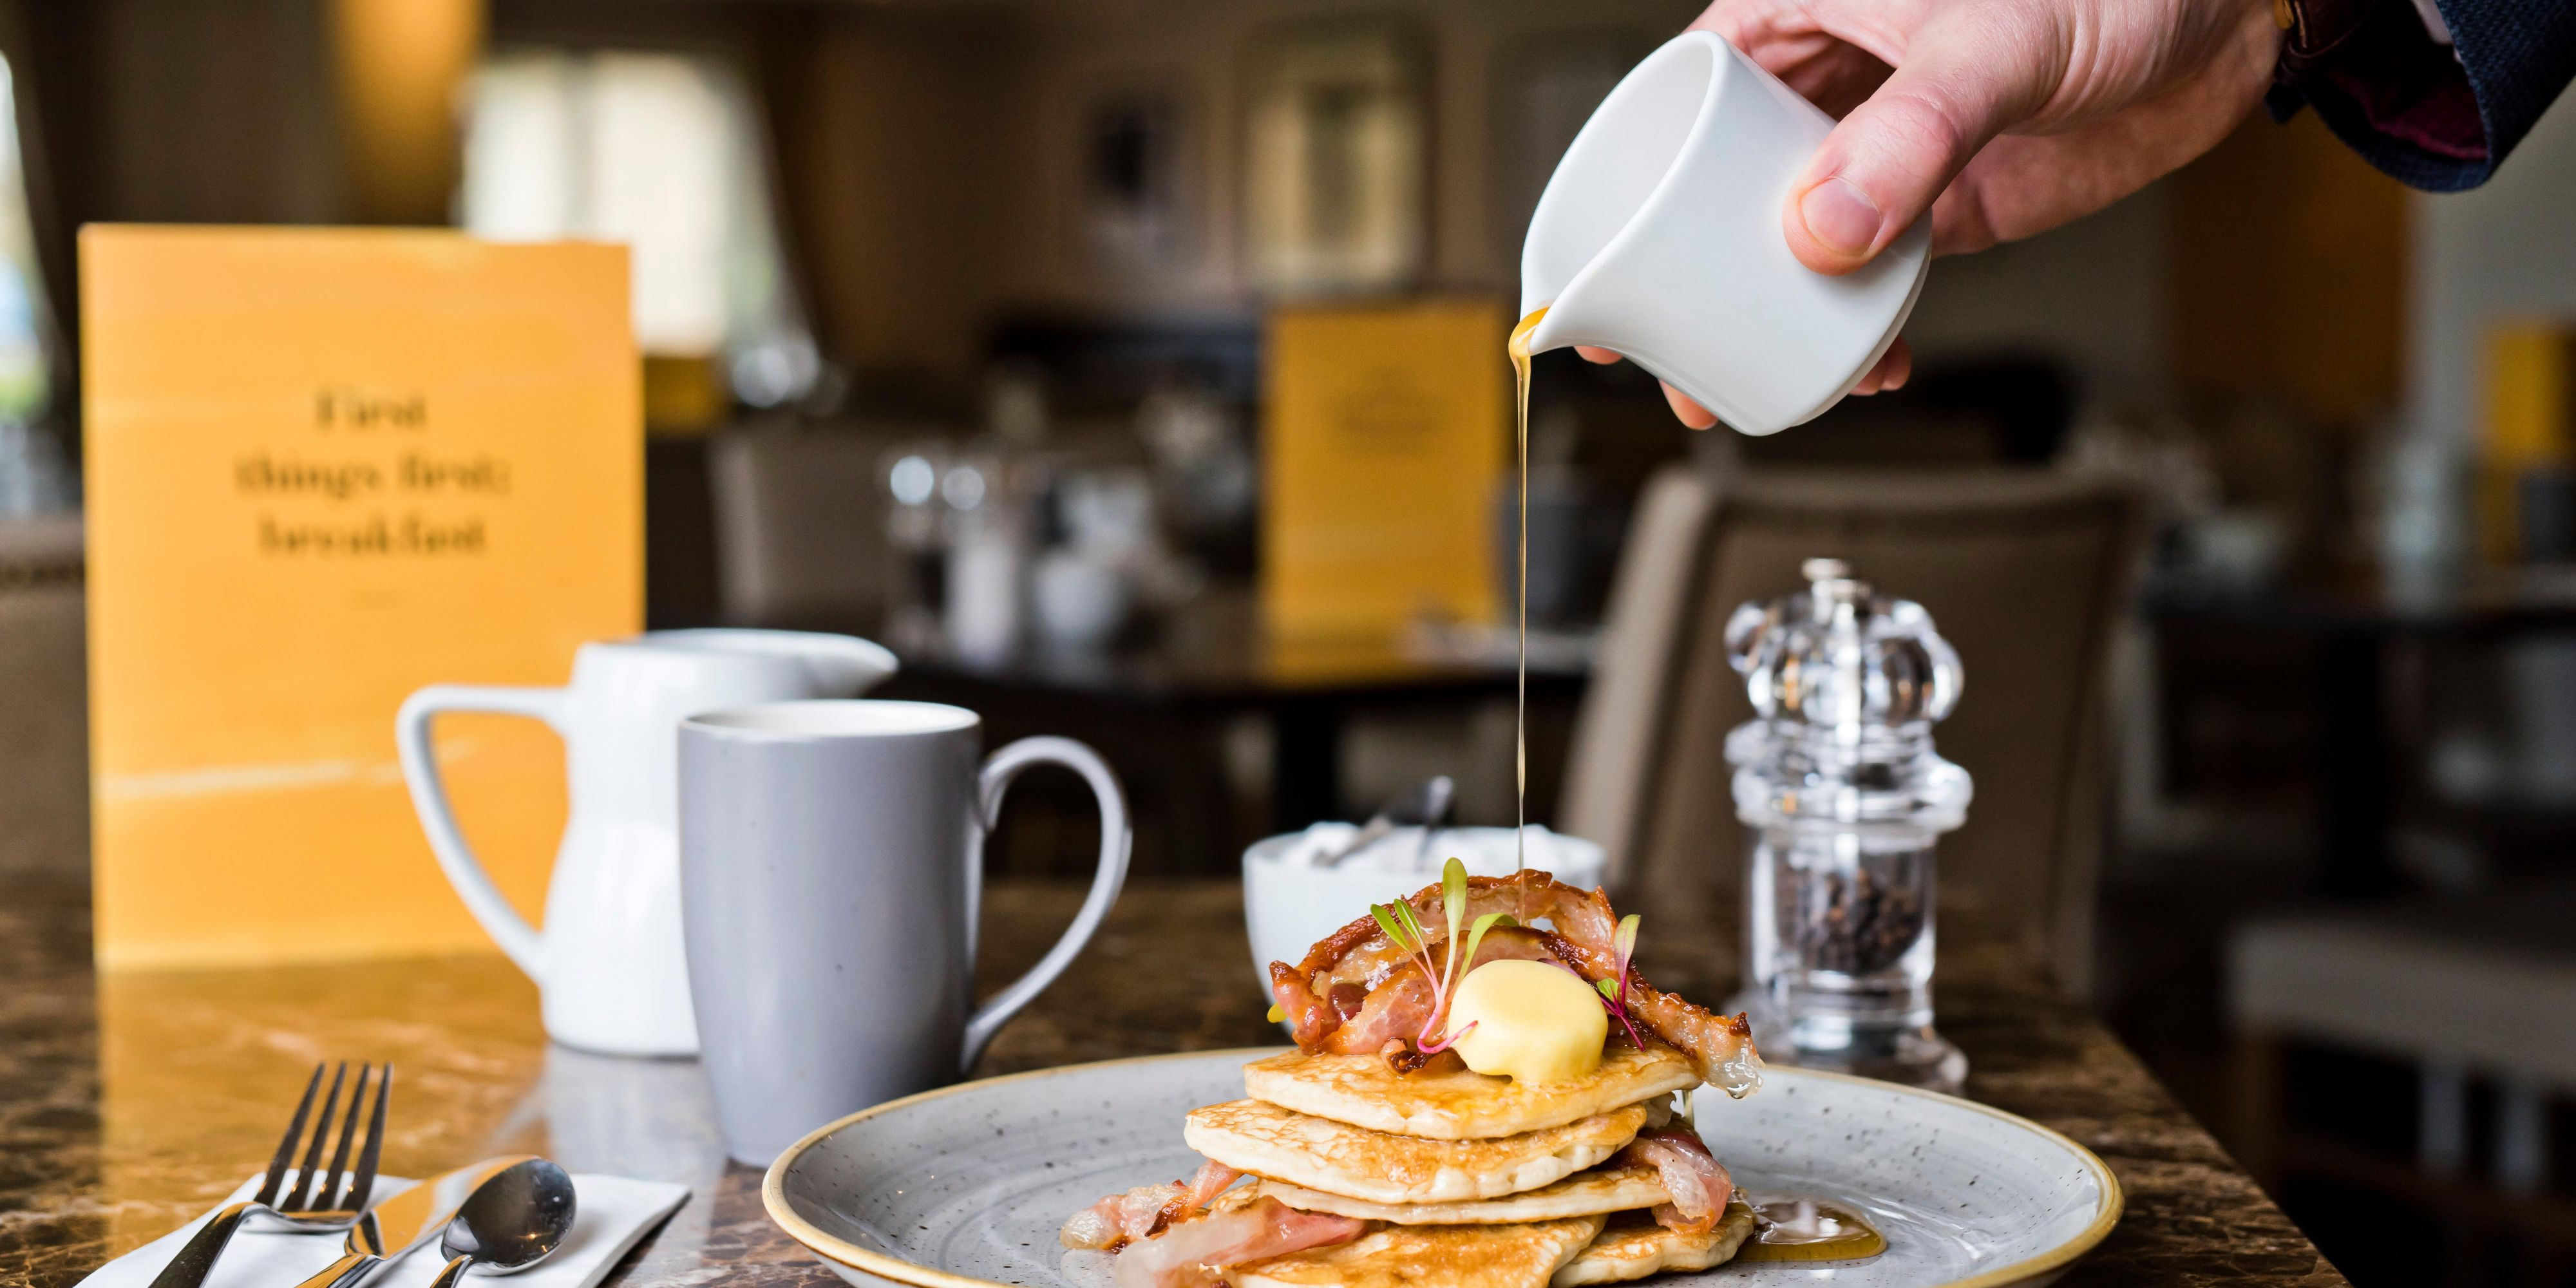 Pancake stack - just one of our many brunch options